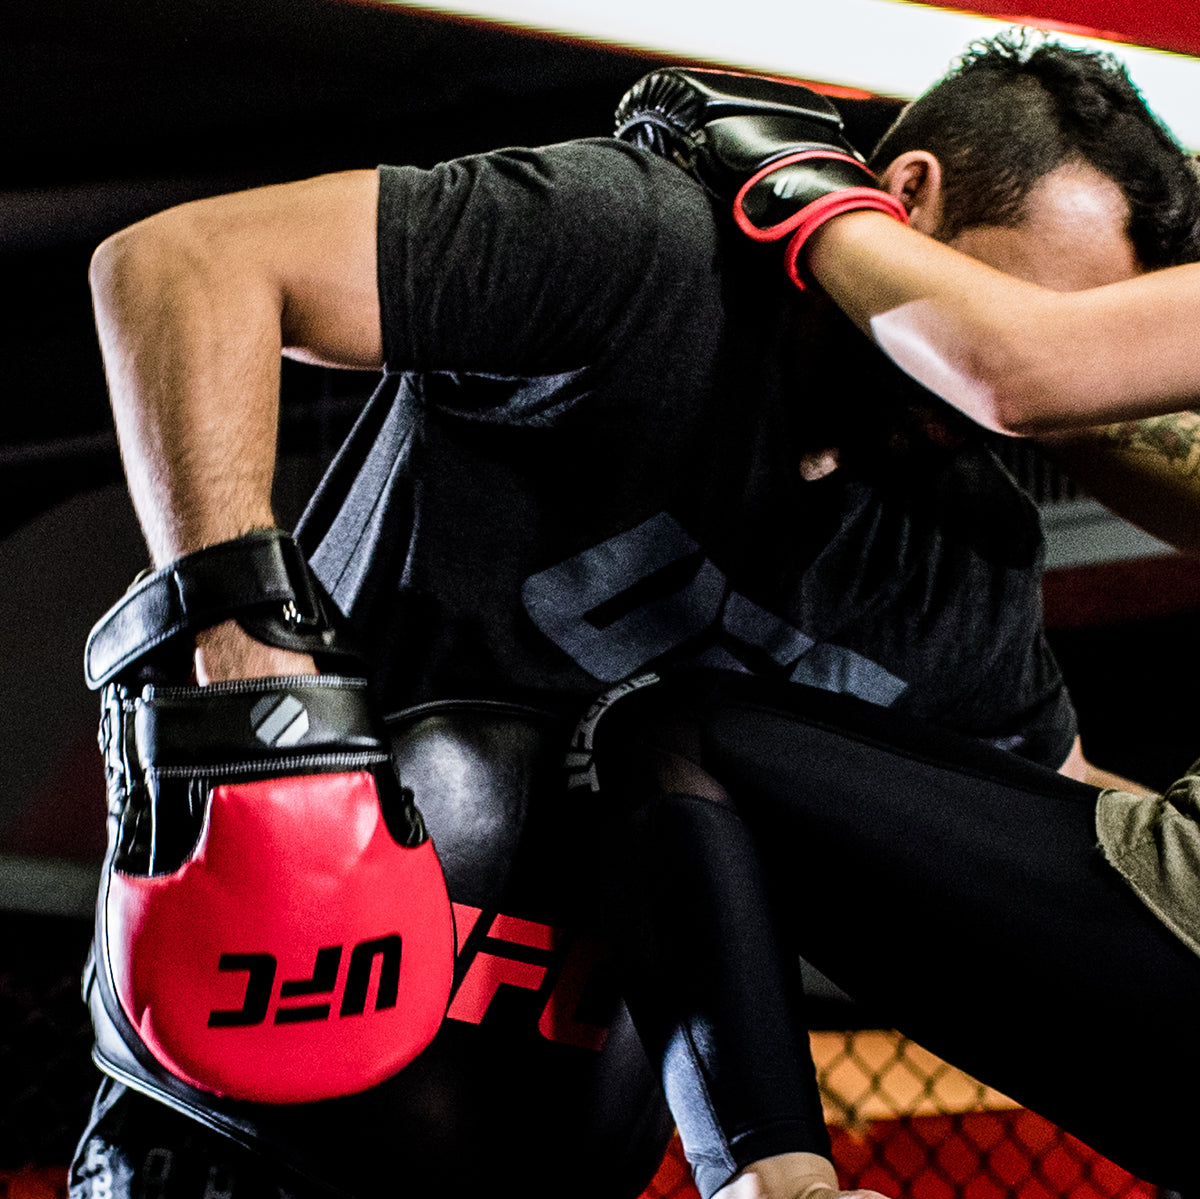 UFC Long Curved Focus Mitt being used by coach in training